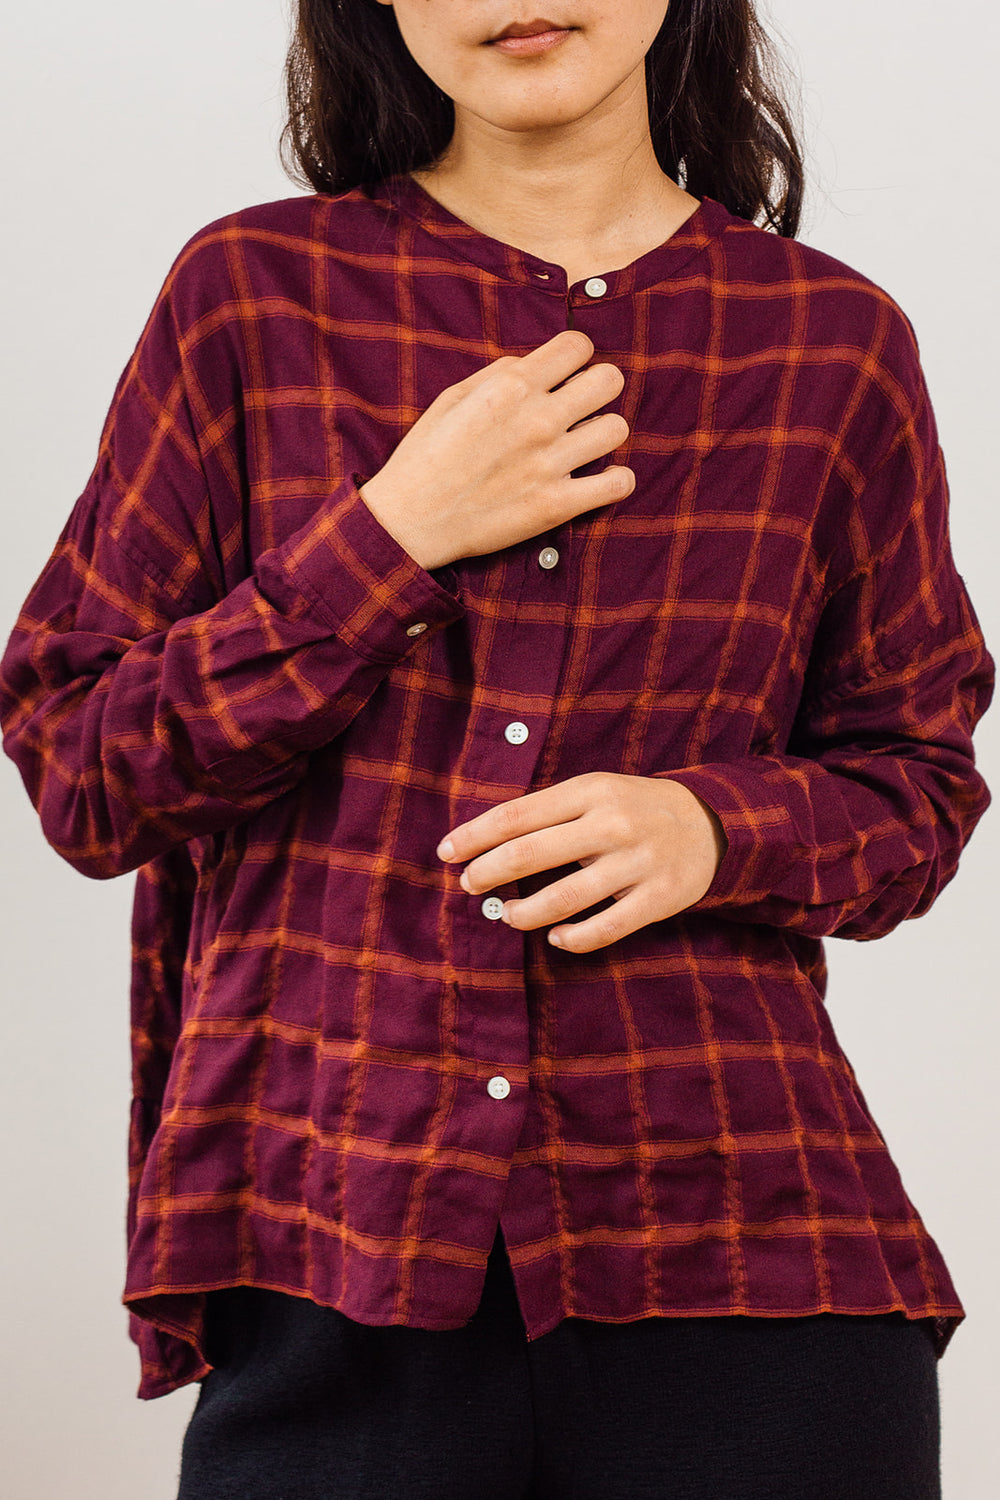 Skoll Shirt, Wine Check